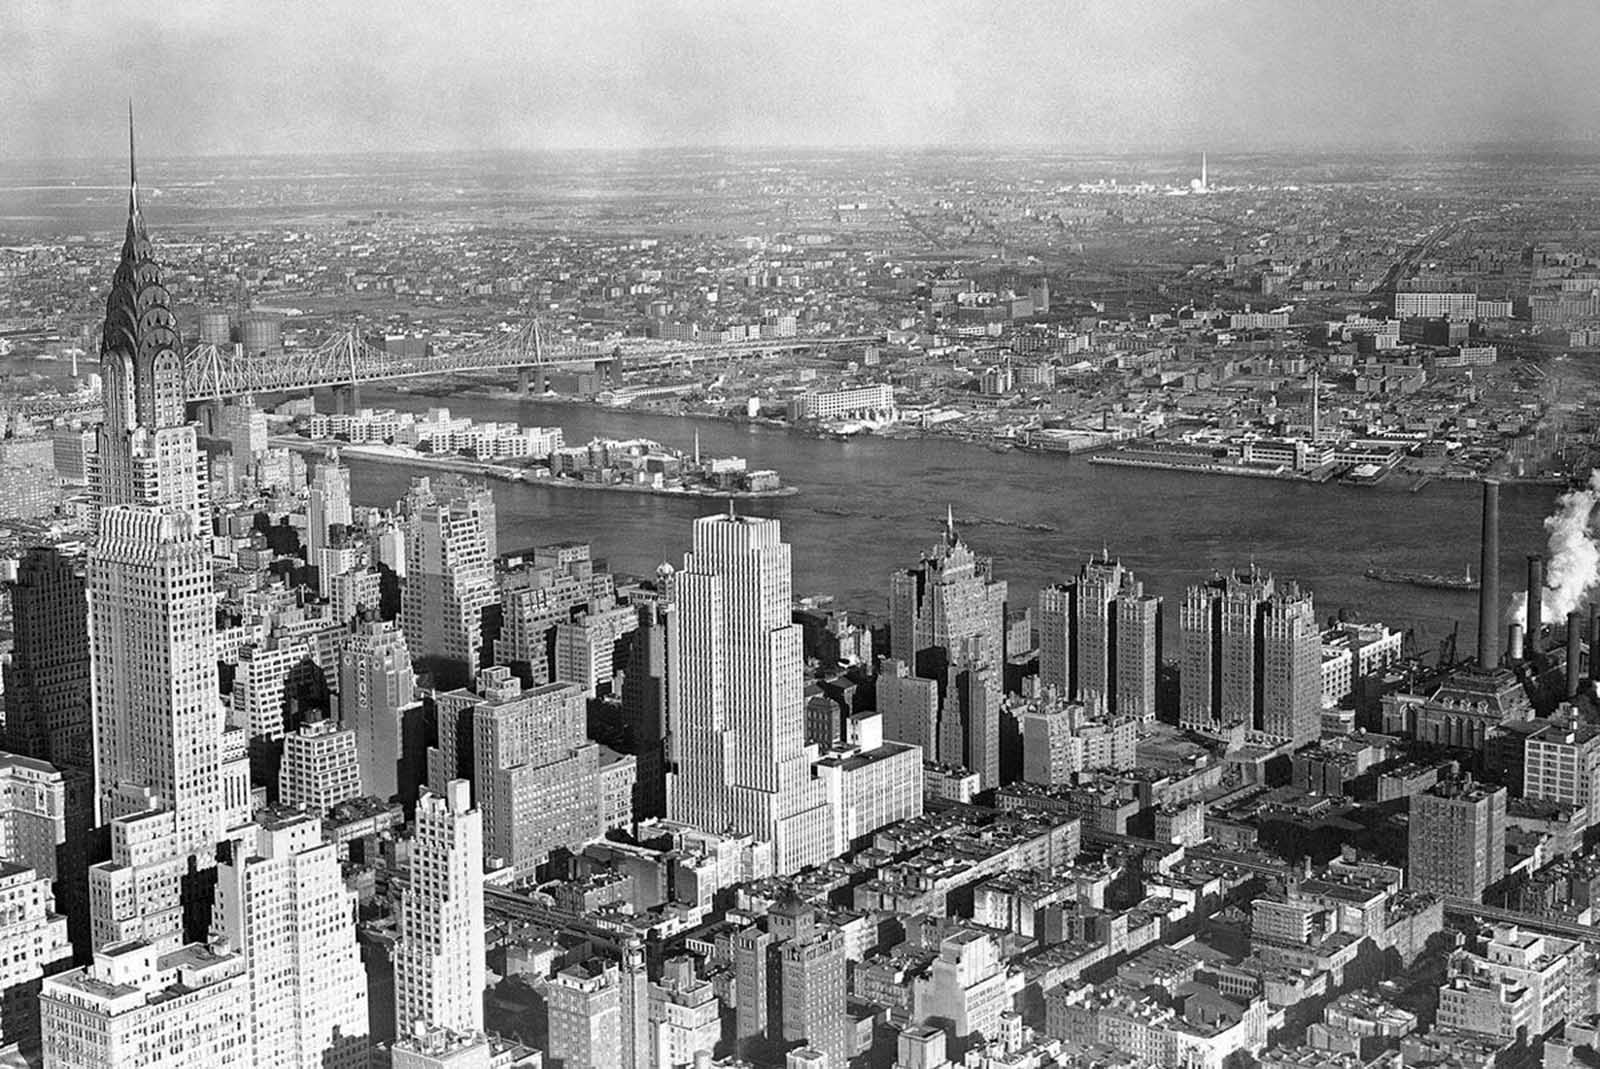 The World's Fair buildings now nearing completion over seven miles away (upper right) can be seen in the distance from the top of the Empire State Building in New York, on February 27, 1939.